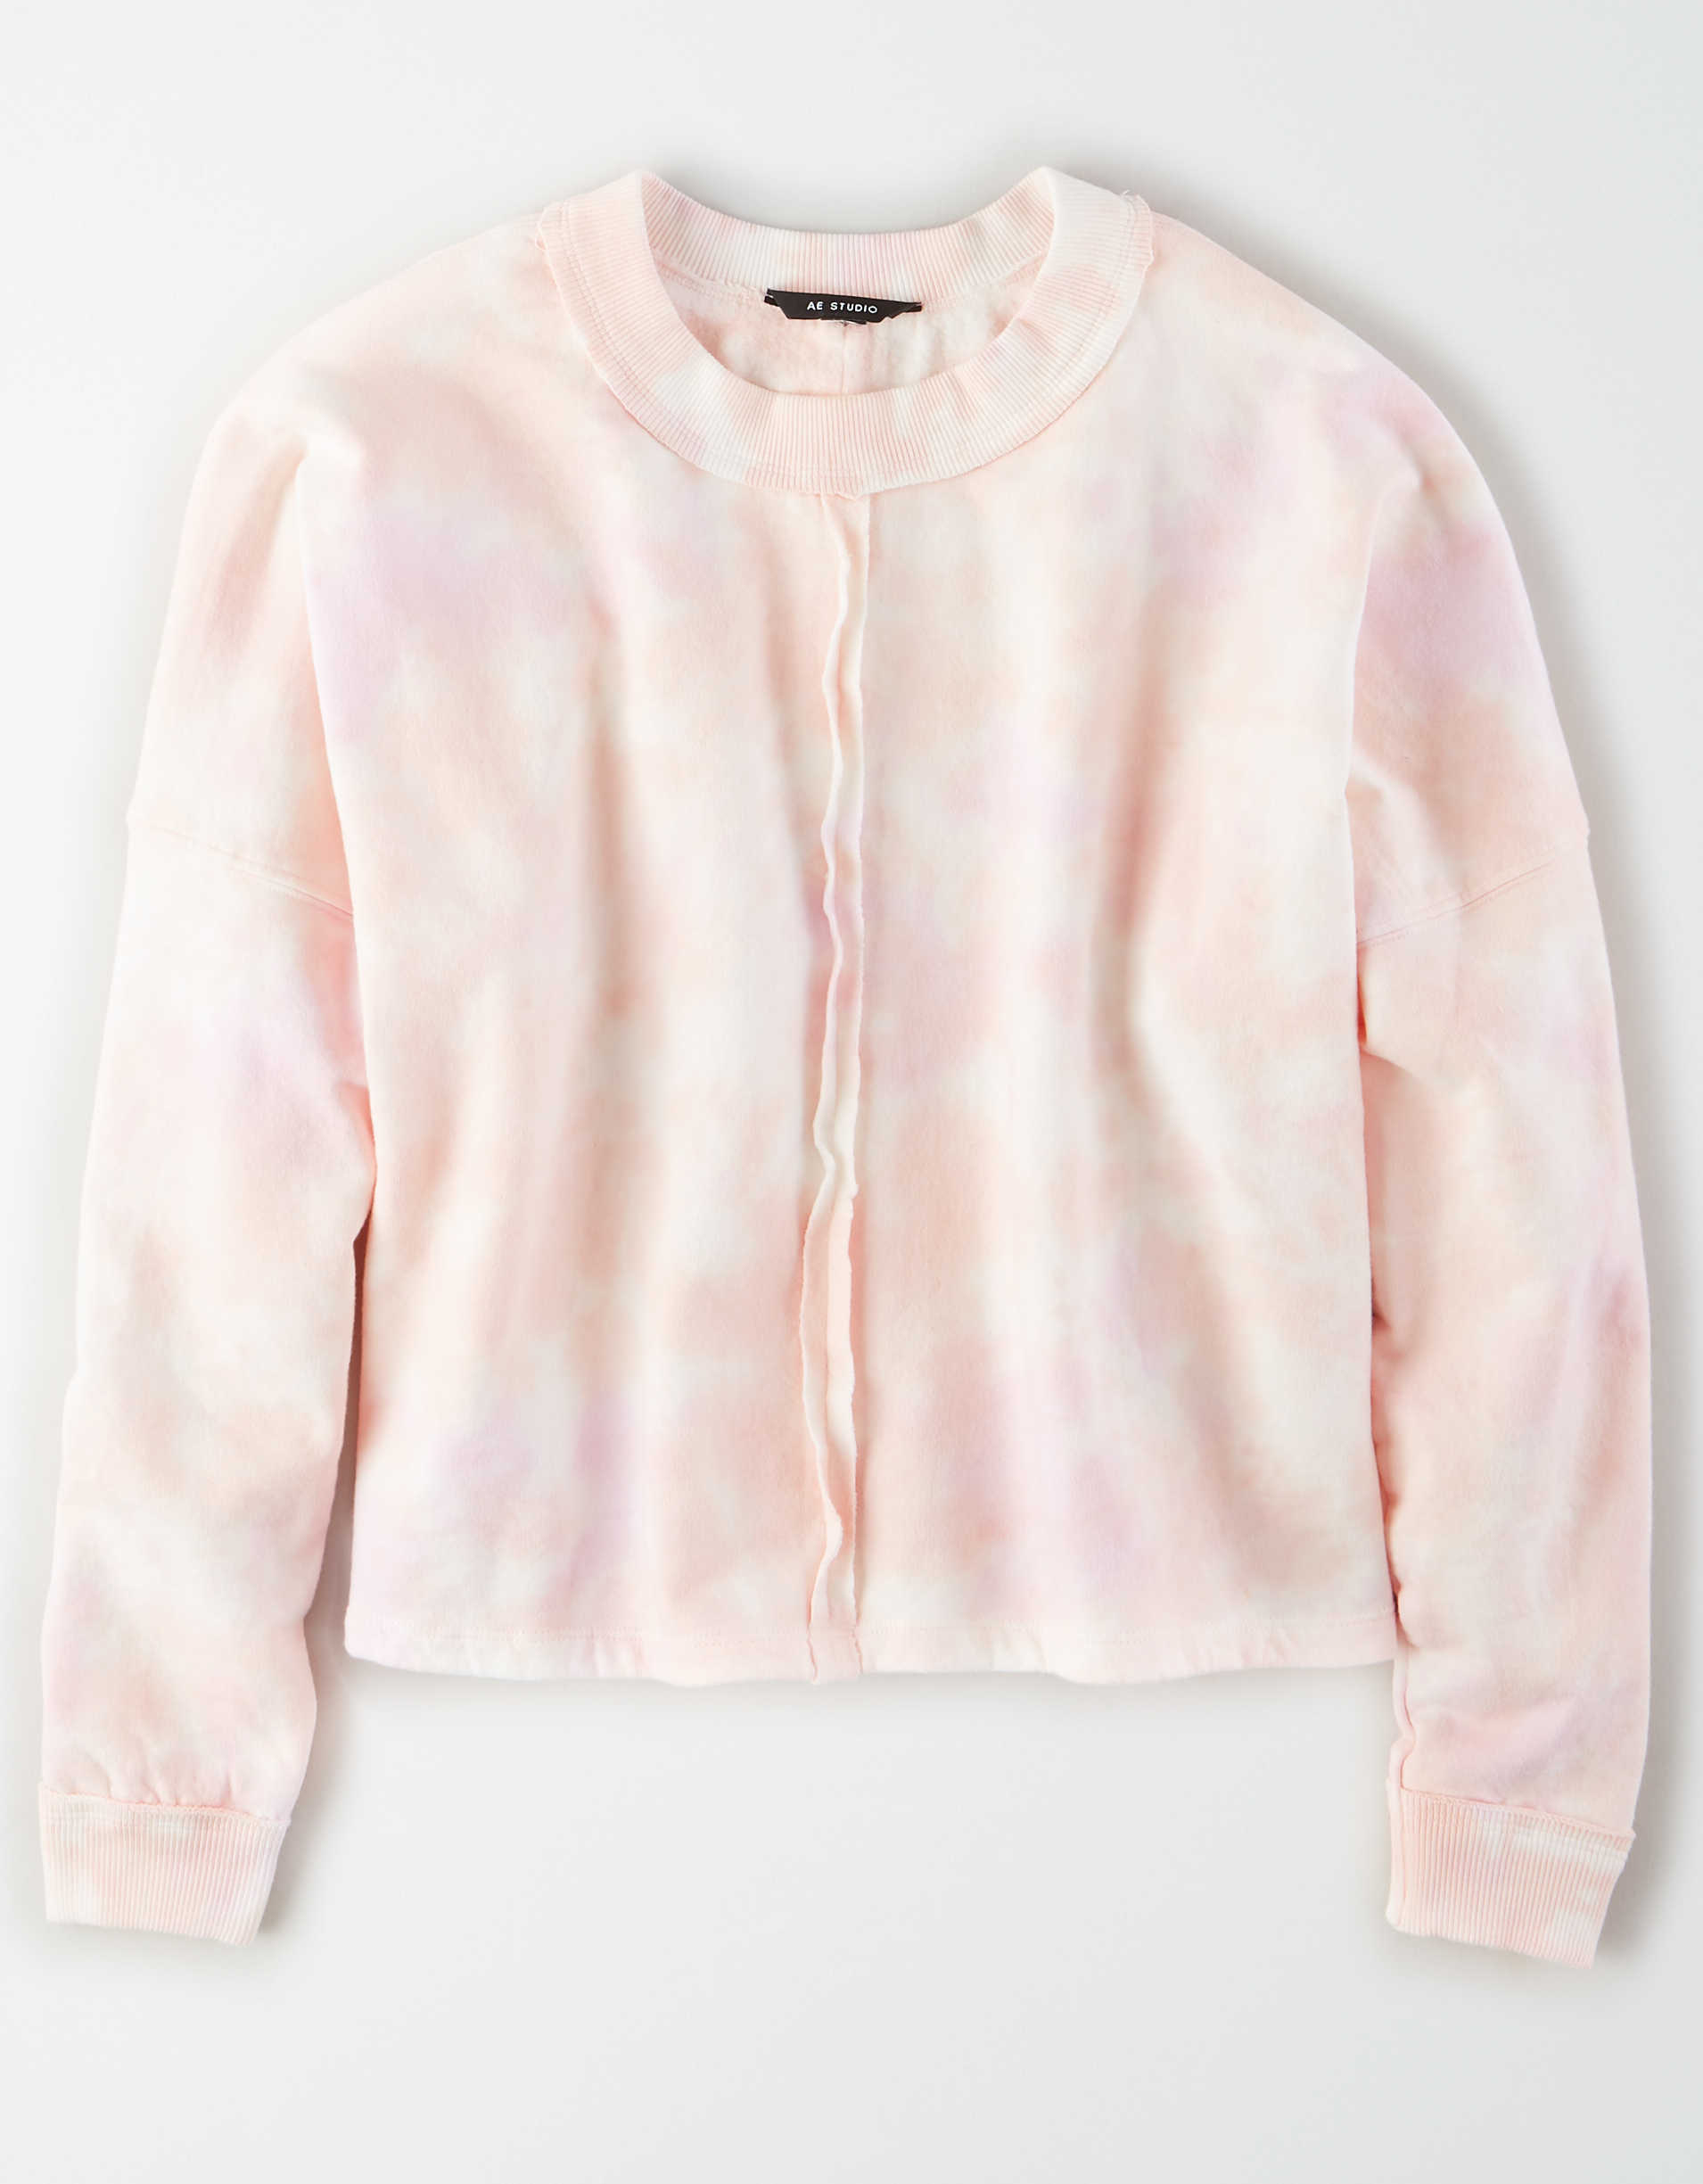 AE Studio Fleece Tie Dye Crew Neck Sweatshirt